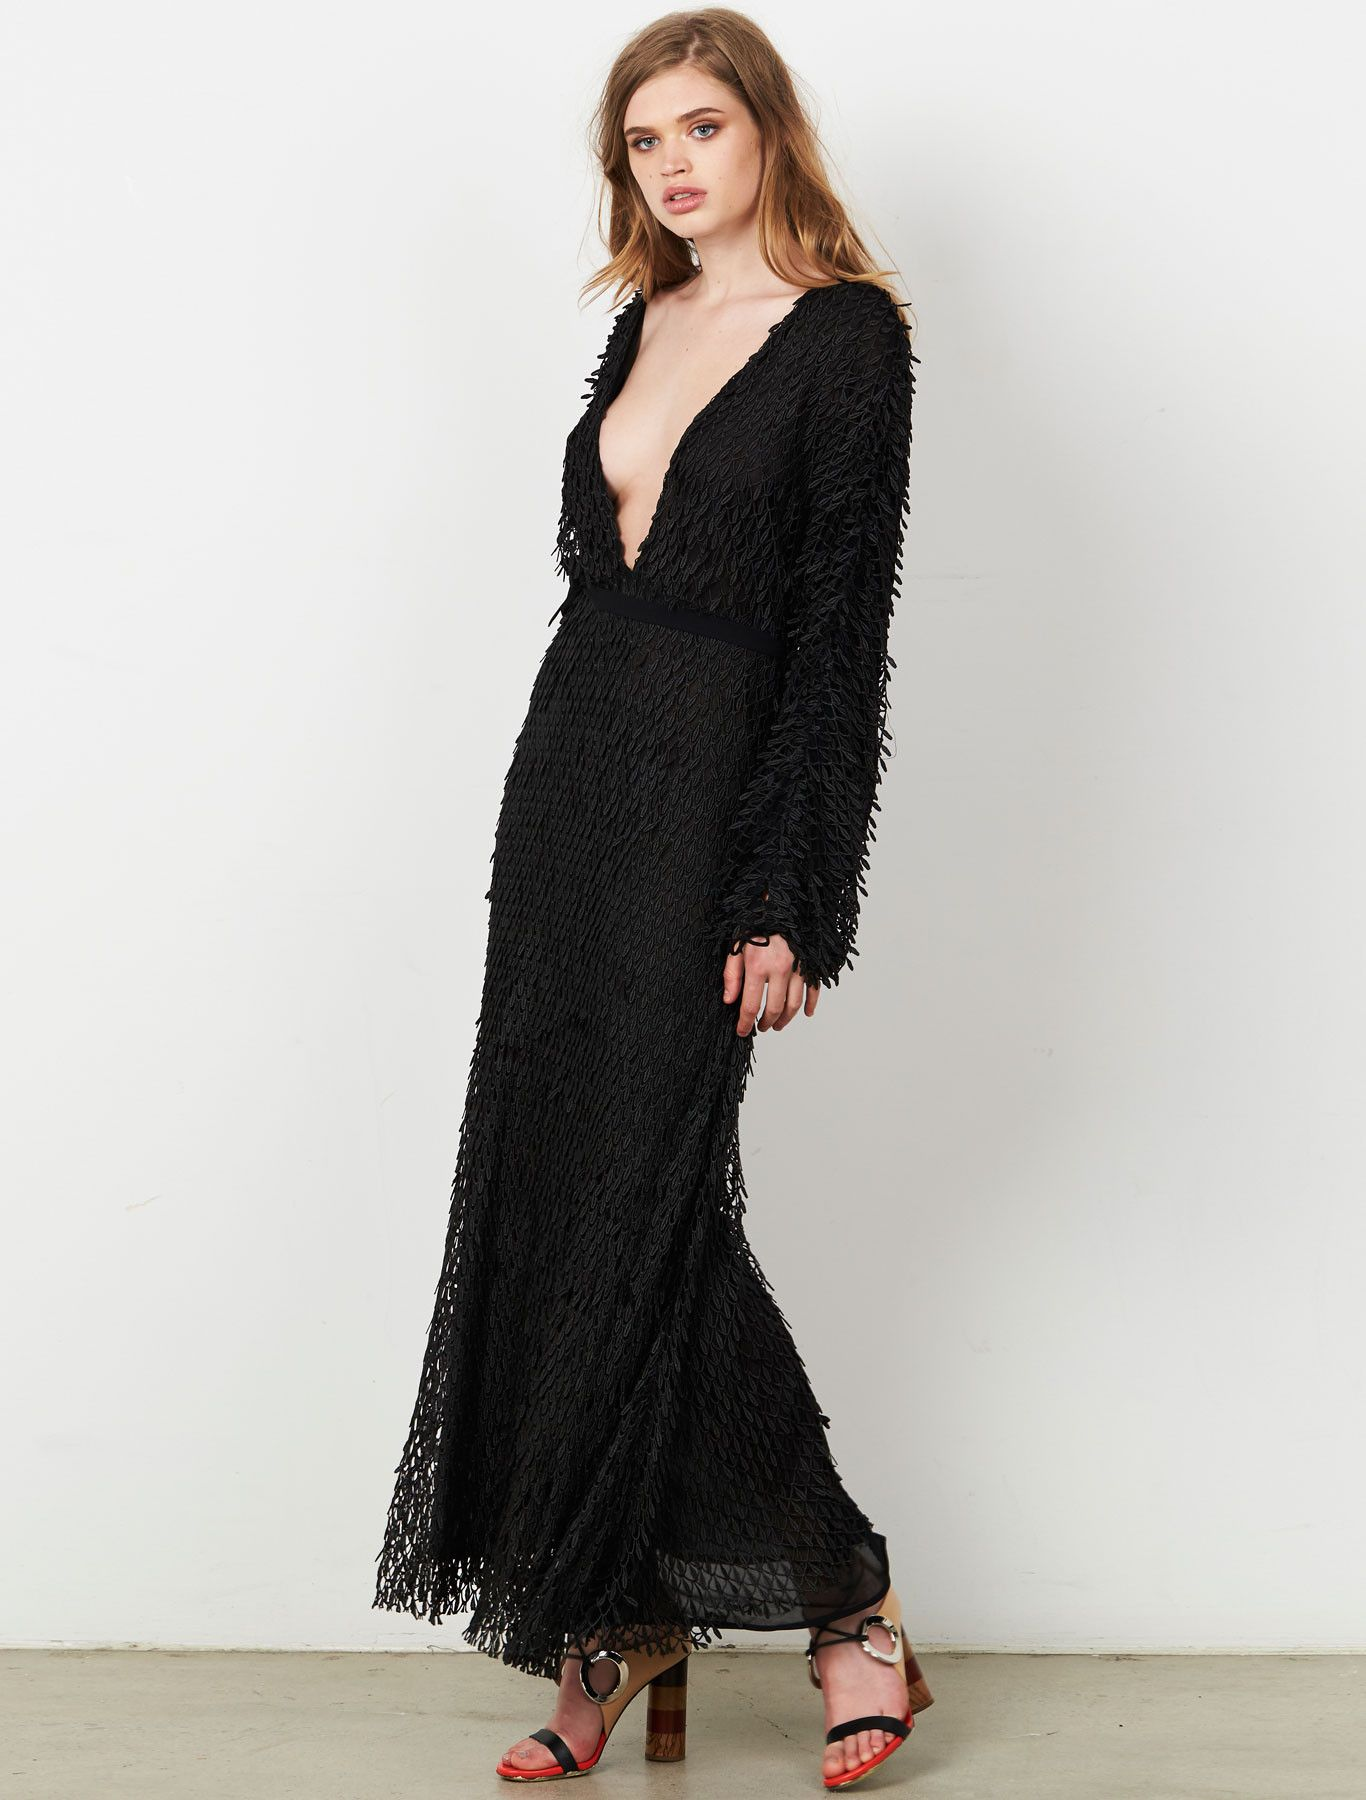 BADLANDS L/S MAXI DRESS With a sense of timeless modernity, this breathtaking black maxi dress has been designed from a unique 3D lace fabrication to give the illusion of being adorned with hundreds of delicate ruffled feathers. With a flattering plunge neck and back line, balanced by billowing long sleeves, the dress uses a series of fine ties to temper the over-sized silhouette. Available www.steviemay.com.au